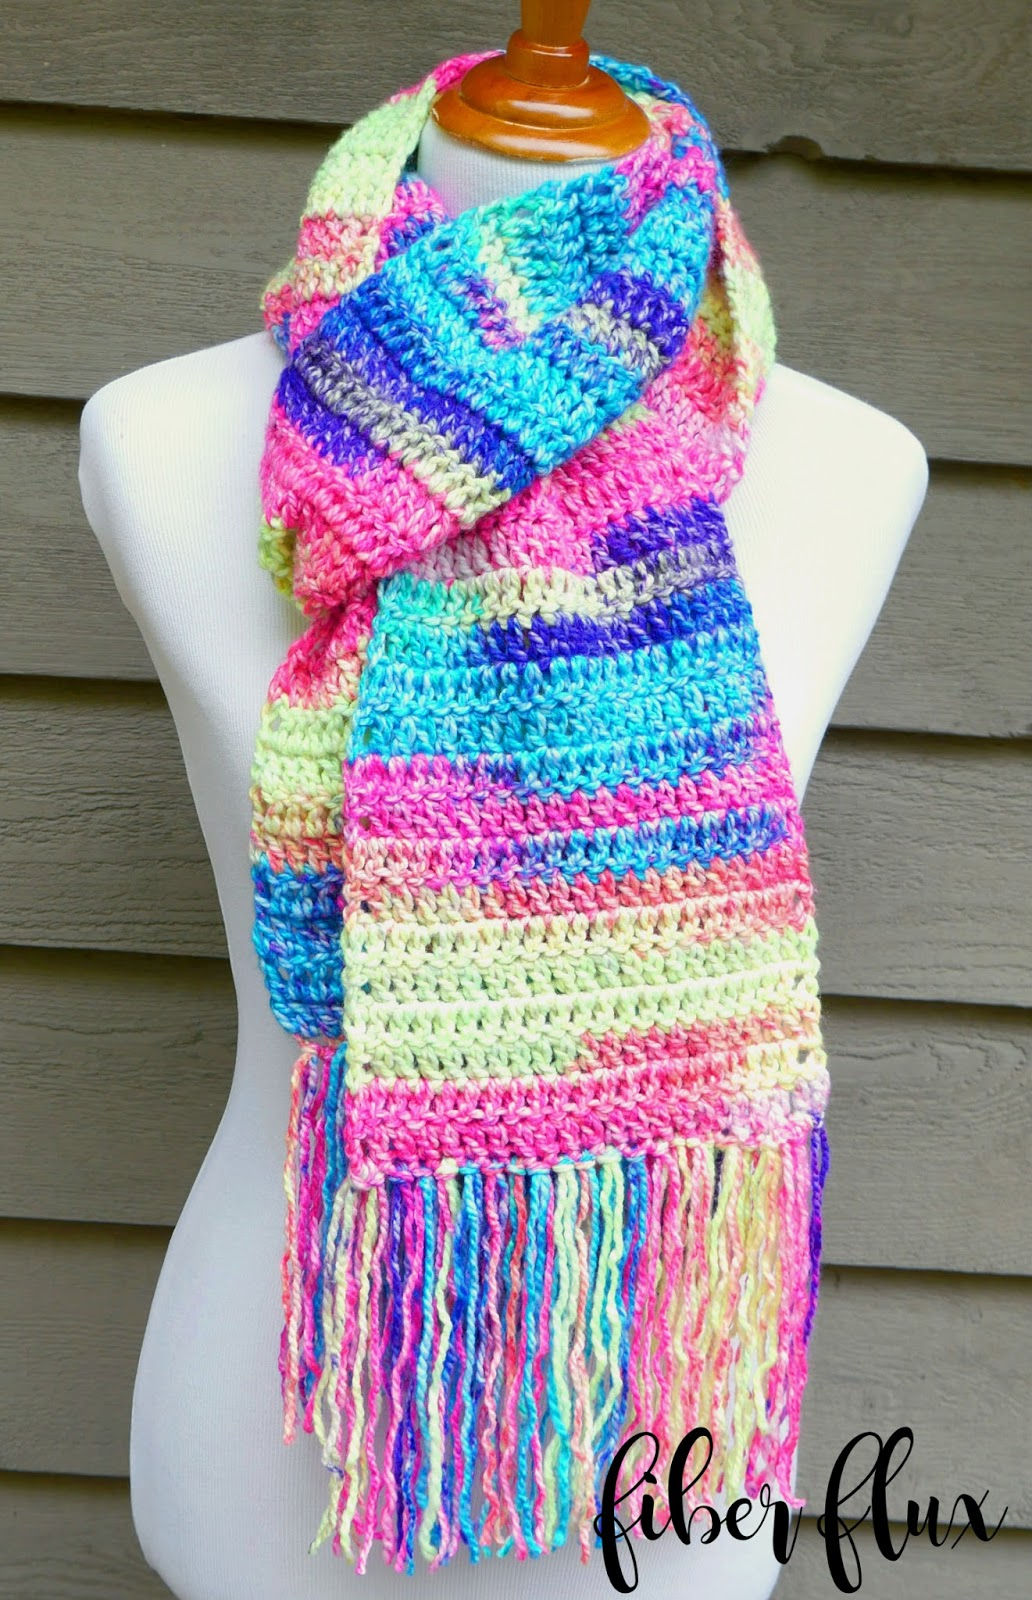 Fiber Flux: Free Crochet Pattern...Absolute Beginner Crochet Scarf!